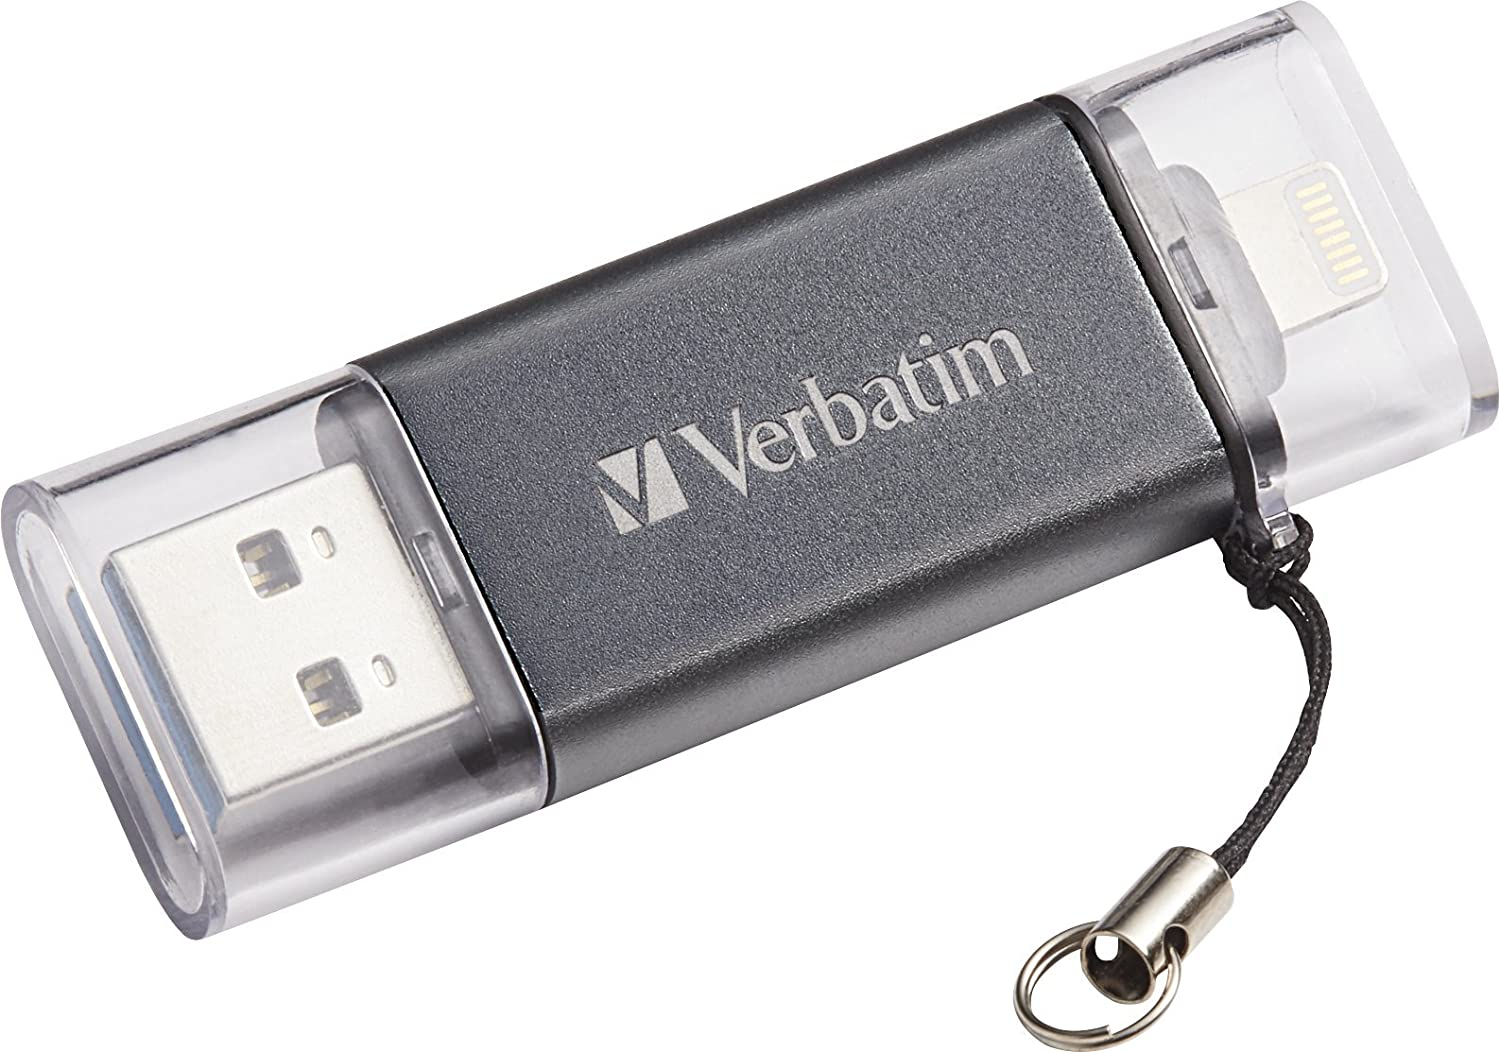 Verbatim 64GB iStore 'n' Go Dual USB 3.0 Flash Drive for Apple Lightning Devices, Graphite 49301 VERBATIM CORPORATION